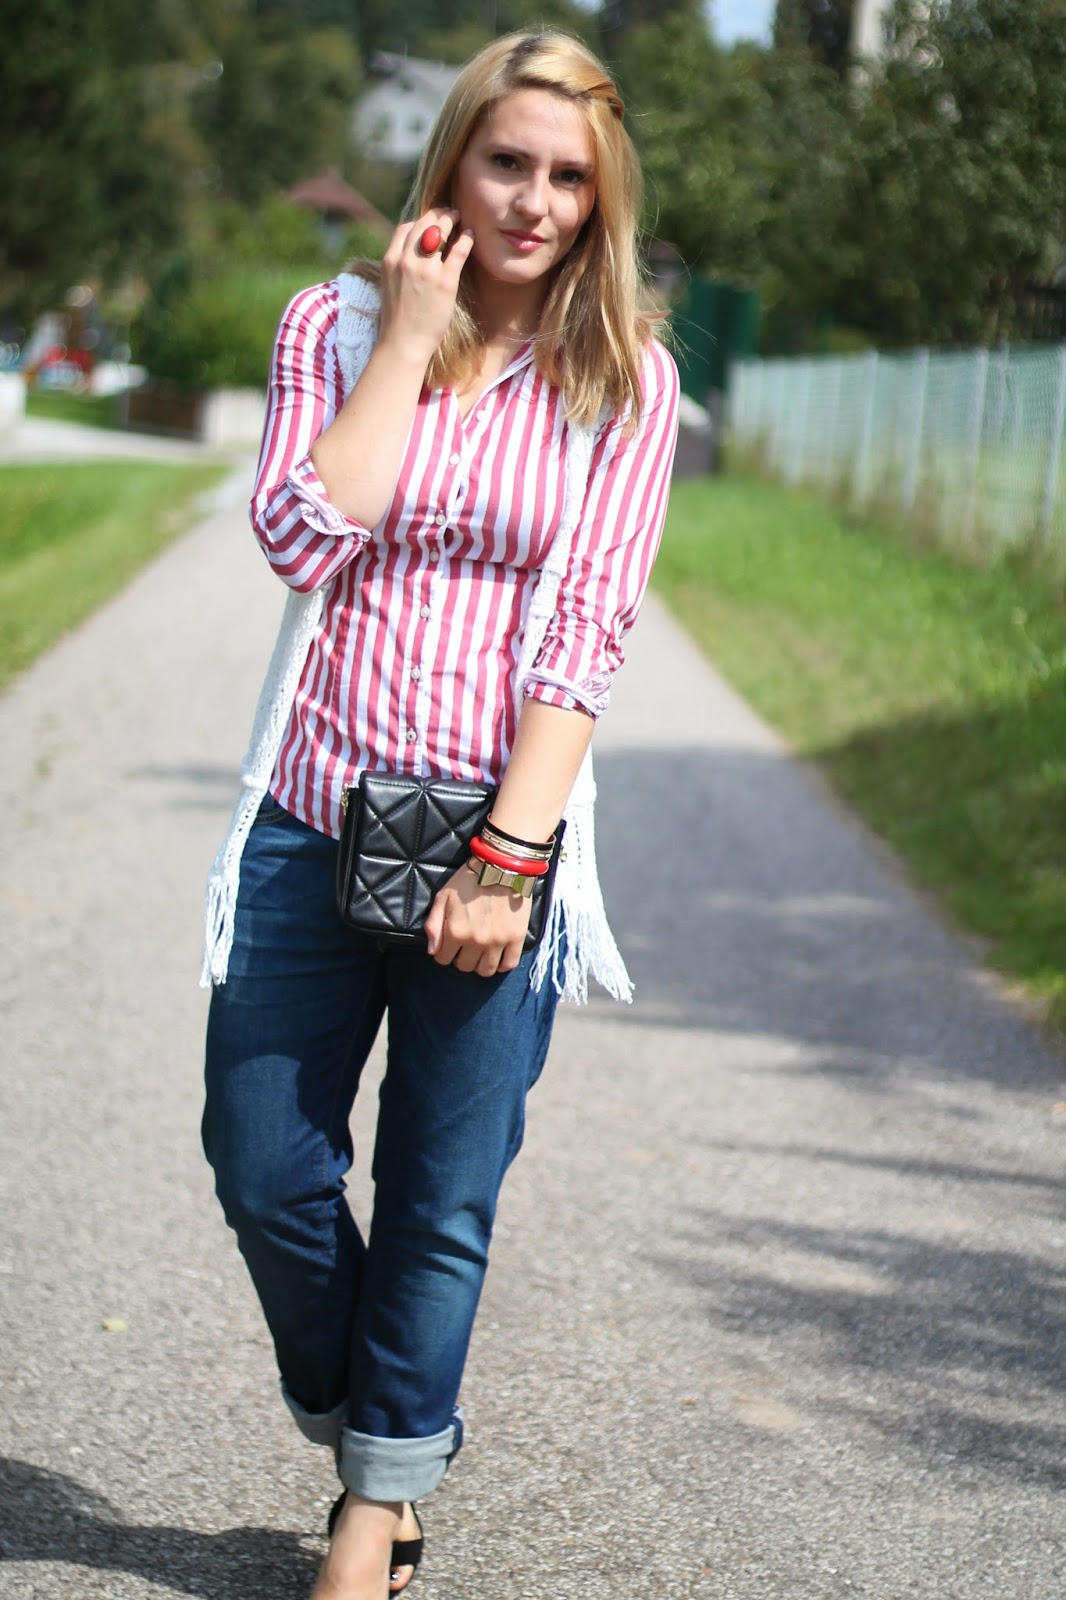 Fashionblogger Austria / Österreich / Deutsch / German / Kärnten / Carinthia / Klagenfurt / Köttmannsdorf / Spring Look / Classy / Edgy / Summer / Summer Style 2014 / Summer Look / Fashionista Look /   / Summer Look / Boyfriend Jeans / White Vest / Stripped Blouse / Maritim / Black Clutch / Cross Body Bag / Strapy Heels / Zalando/ Ernstings Family / Zara / Tommy Hilfiger / Vero MOda / I Am /